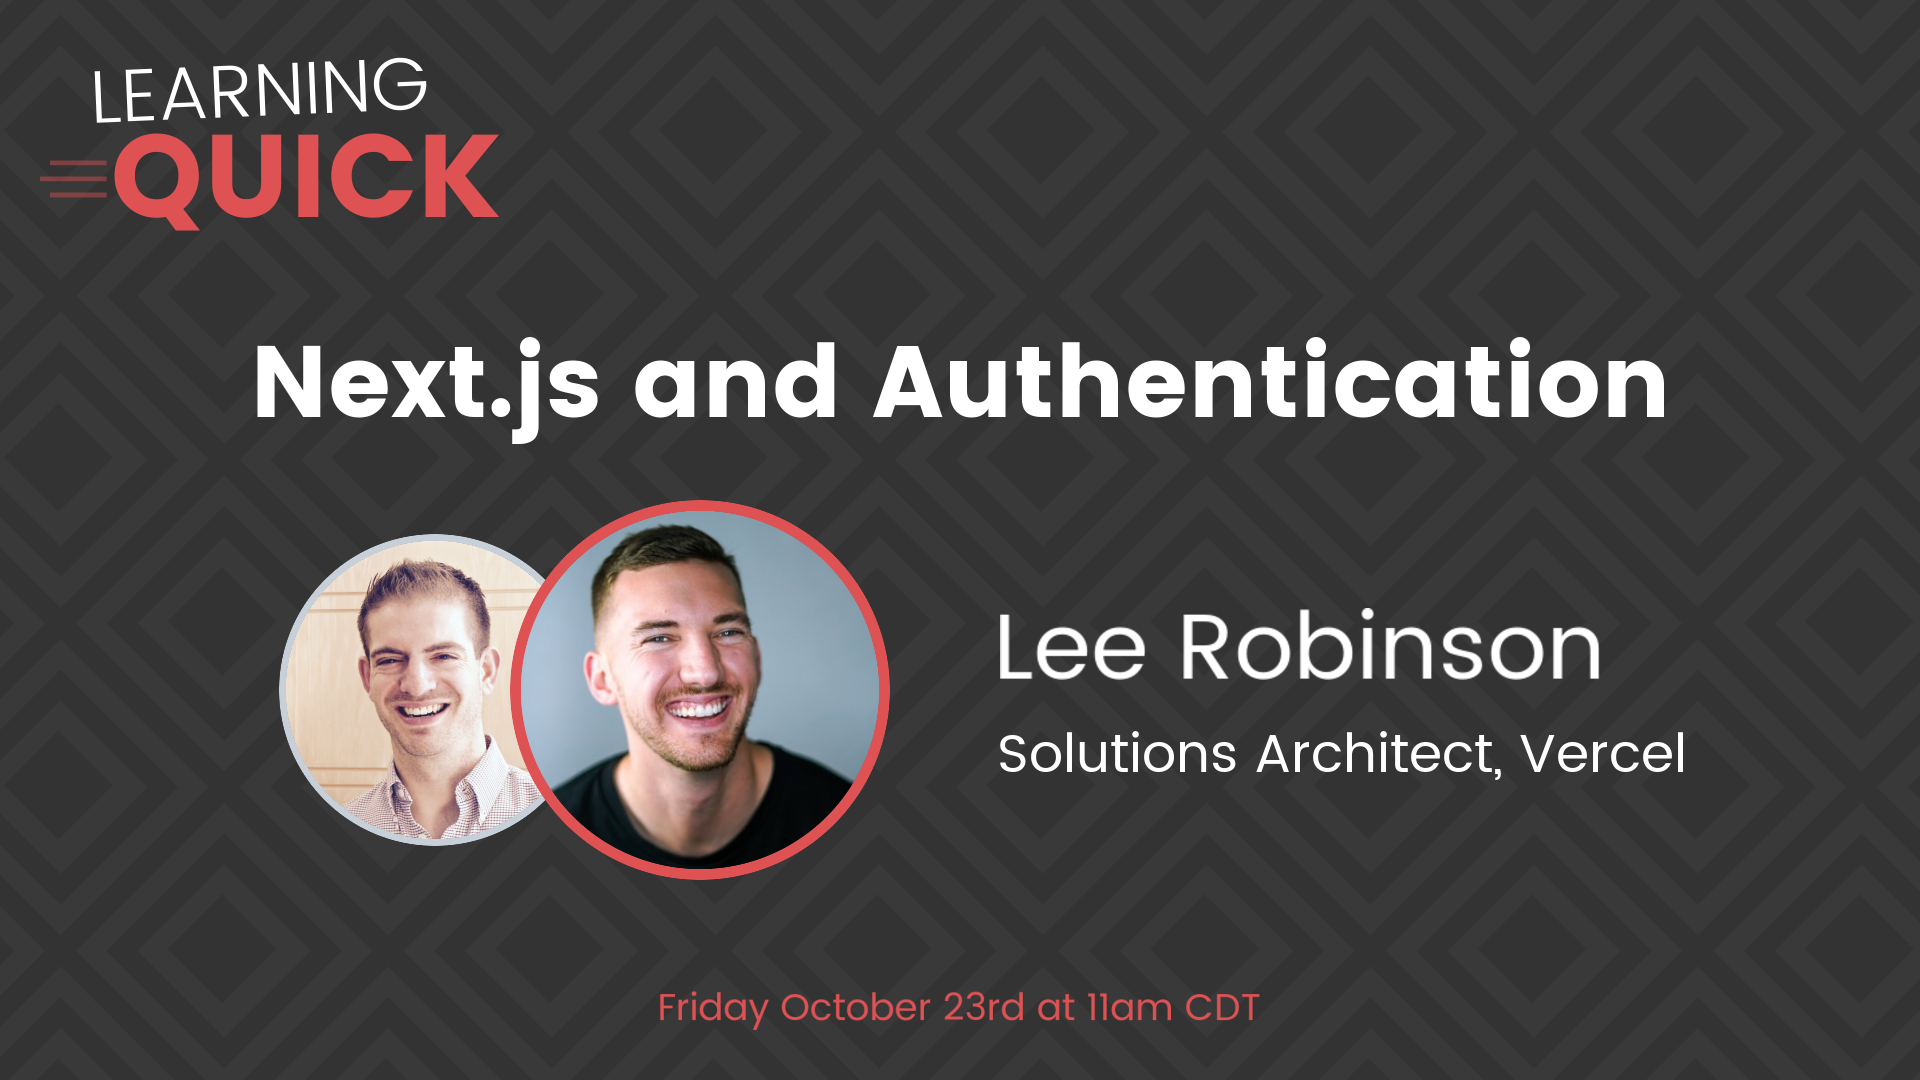 Next.js and Authentication with Lee Robinson